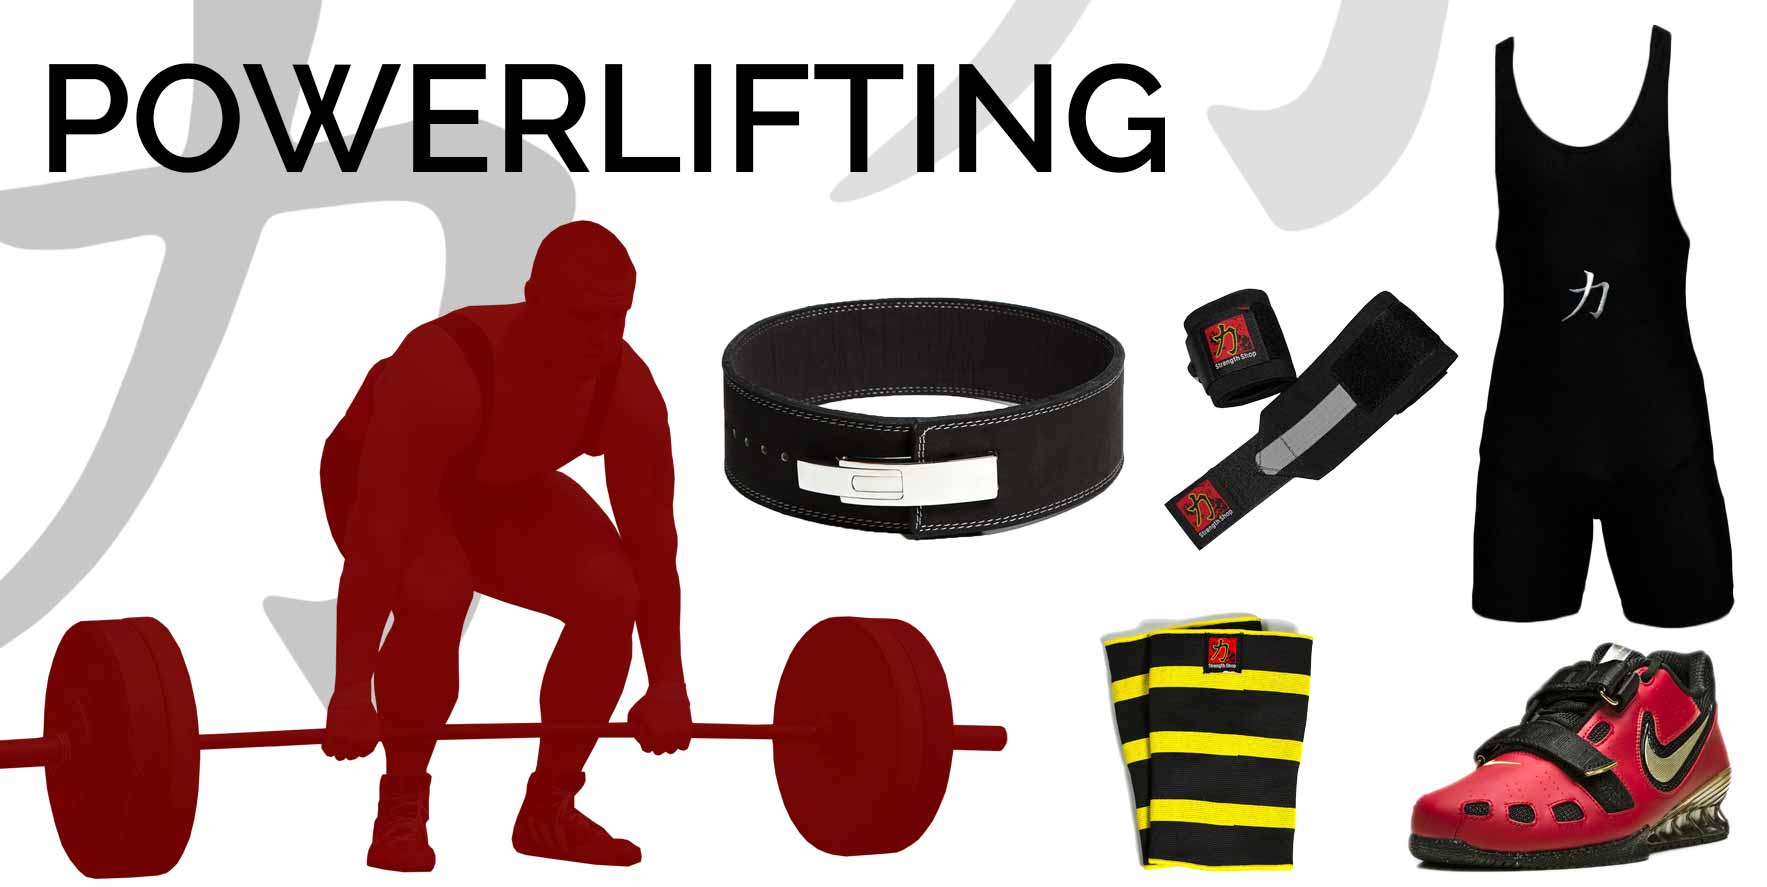 Olympic Weightlifting Powerlifting Strongman